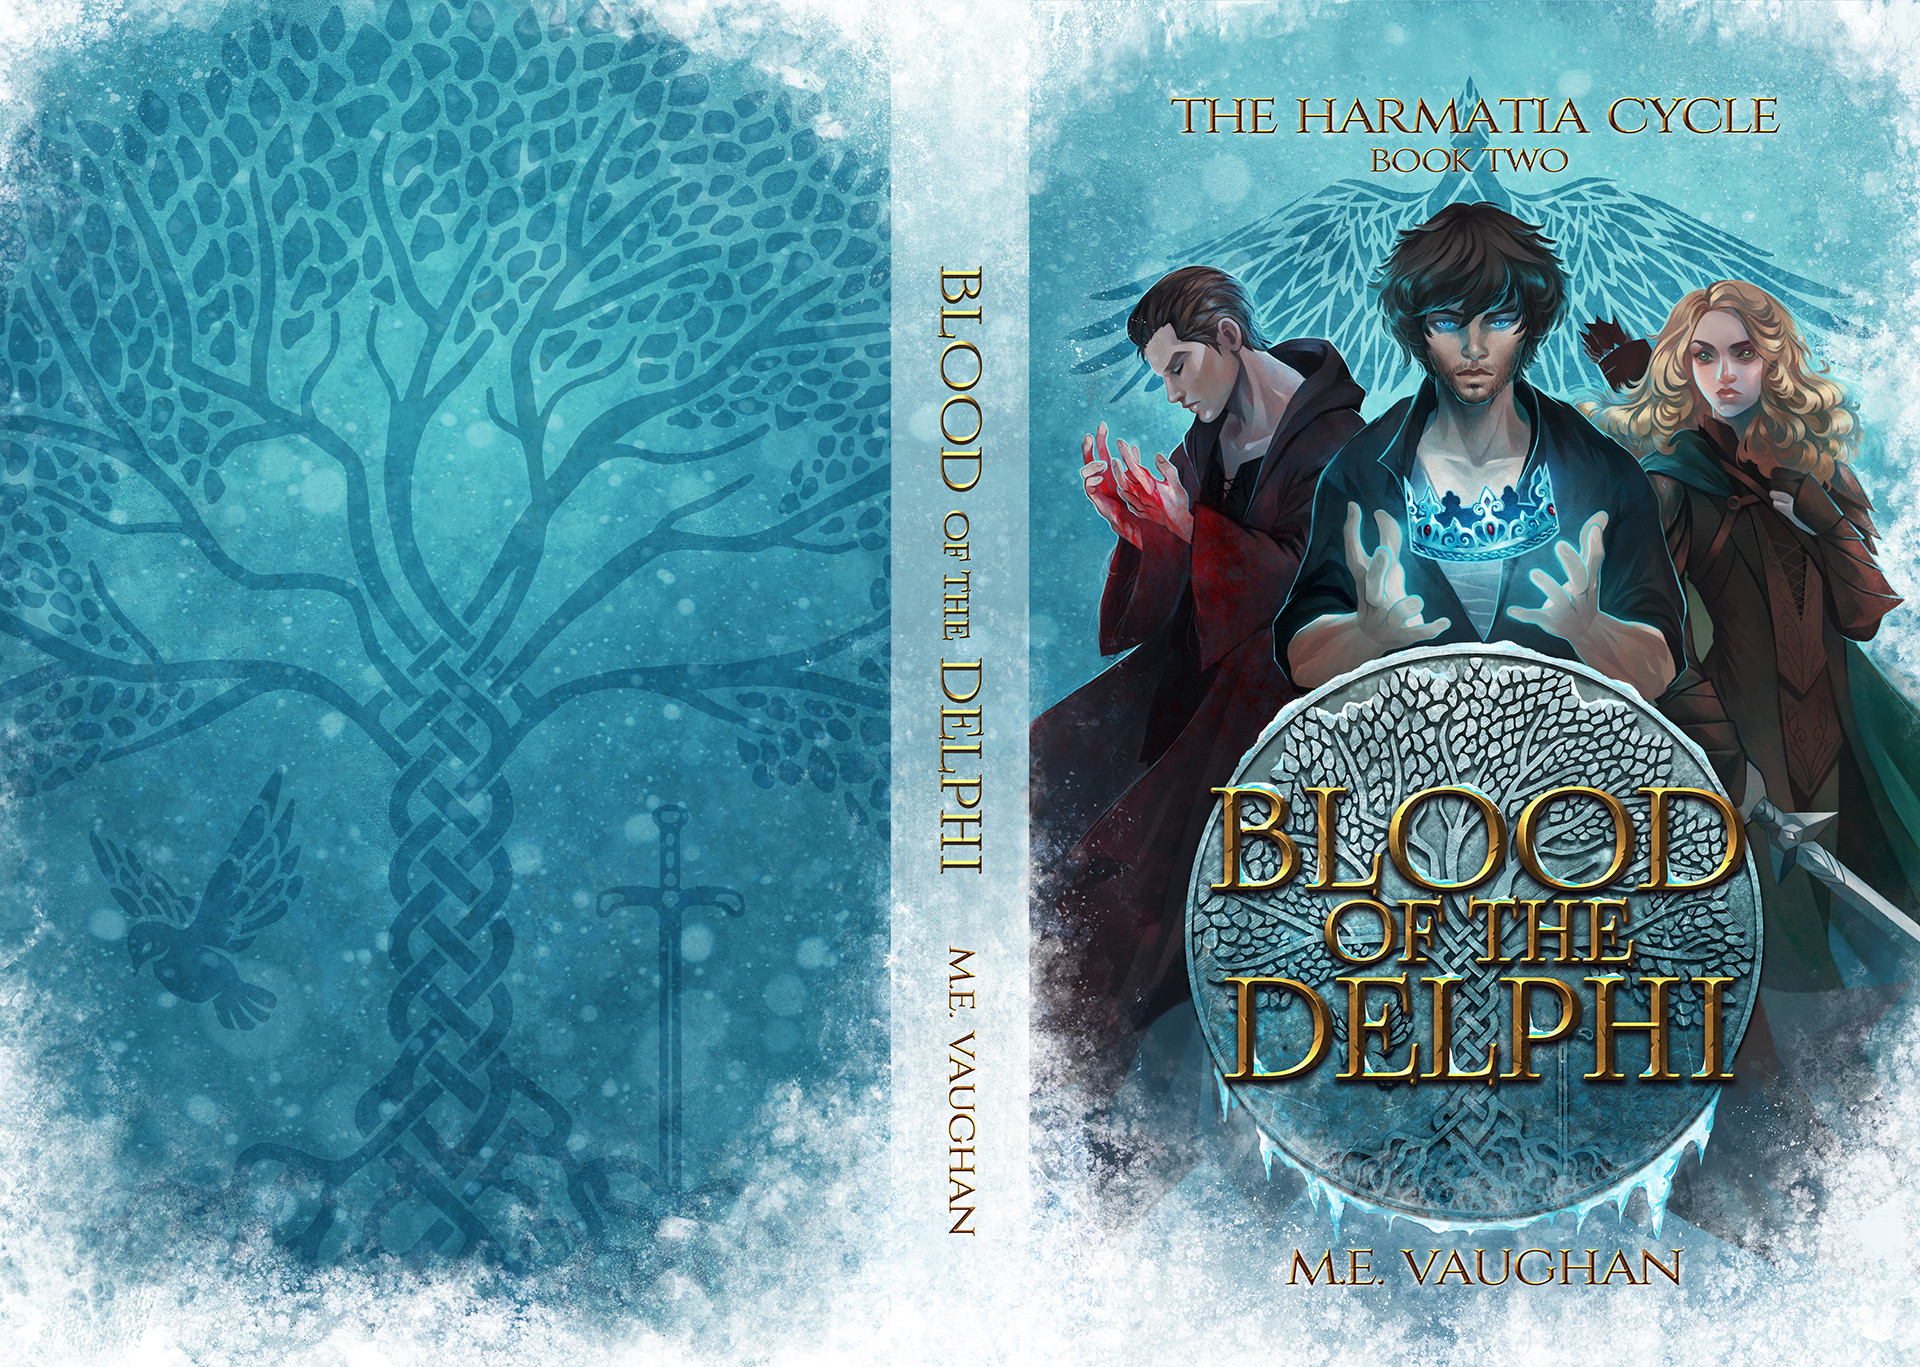 Stef tastan blood of the delphi full edited new text